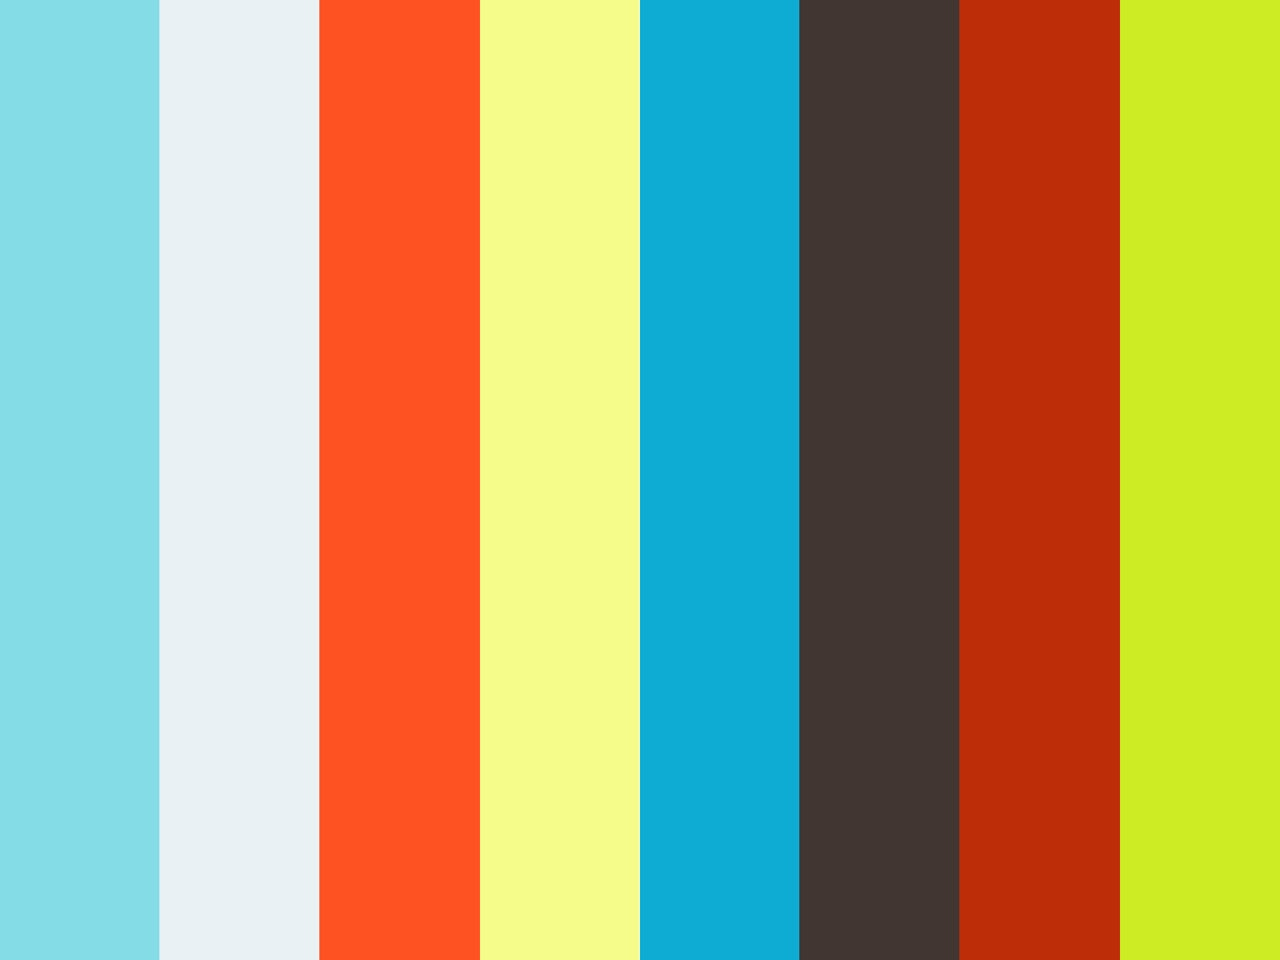 IMEs and Second Opinions in New Jersey